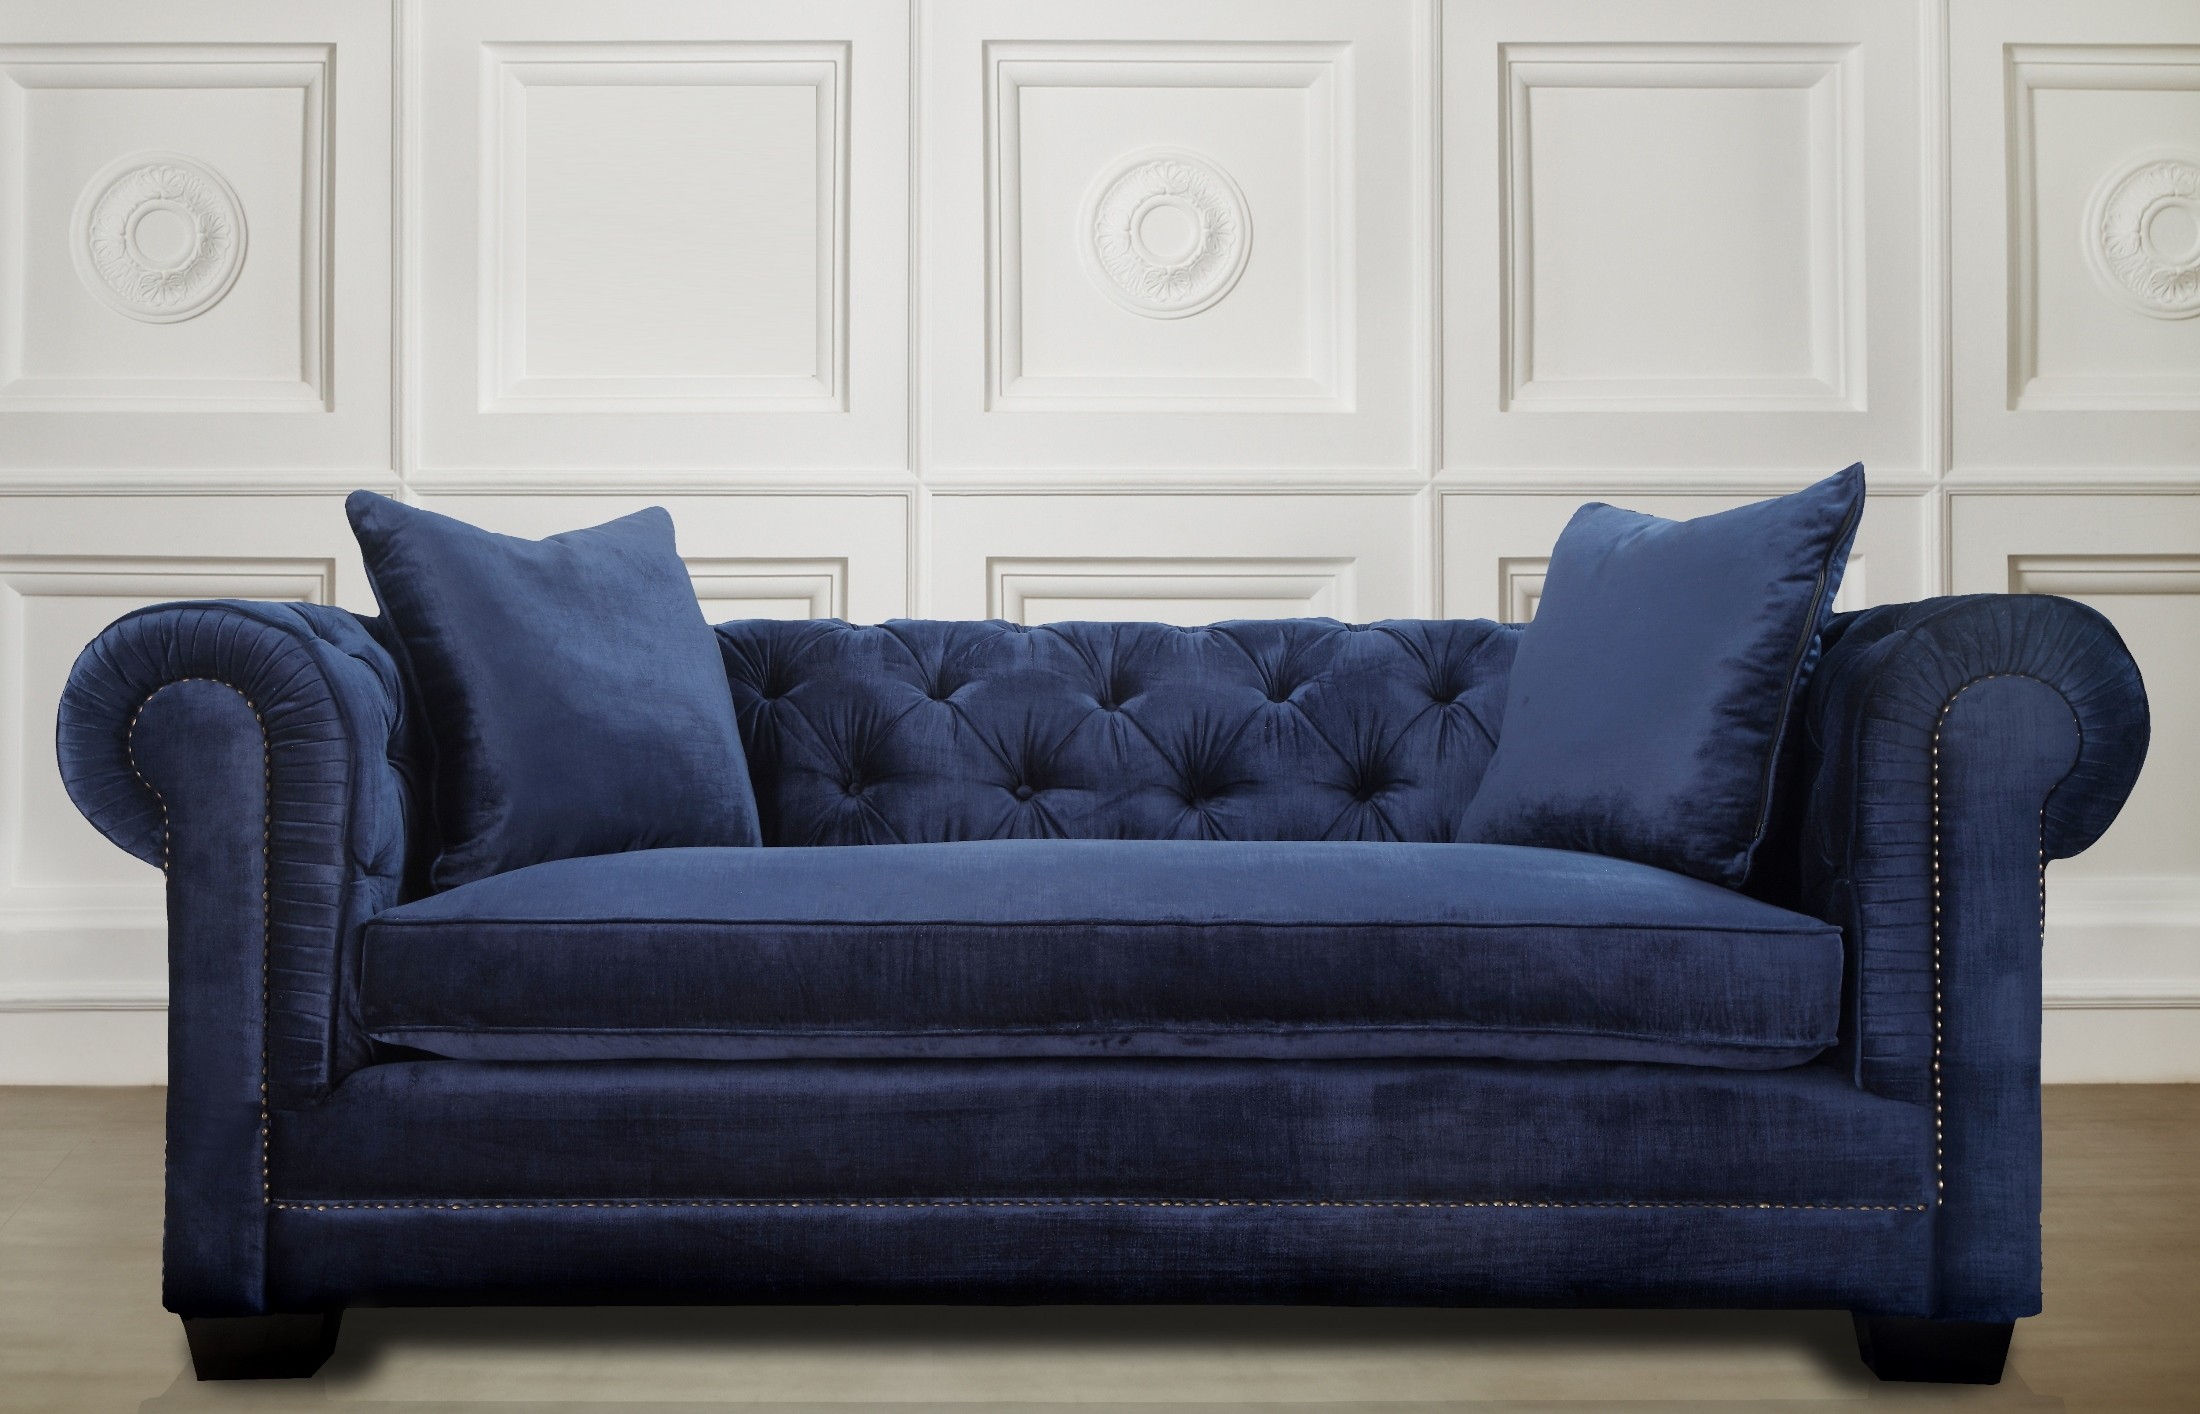 Norwalk Navy Velvet Sofa From Tov Tov S25 Coleman Furniture